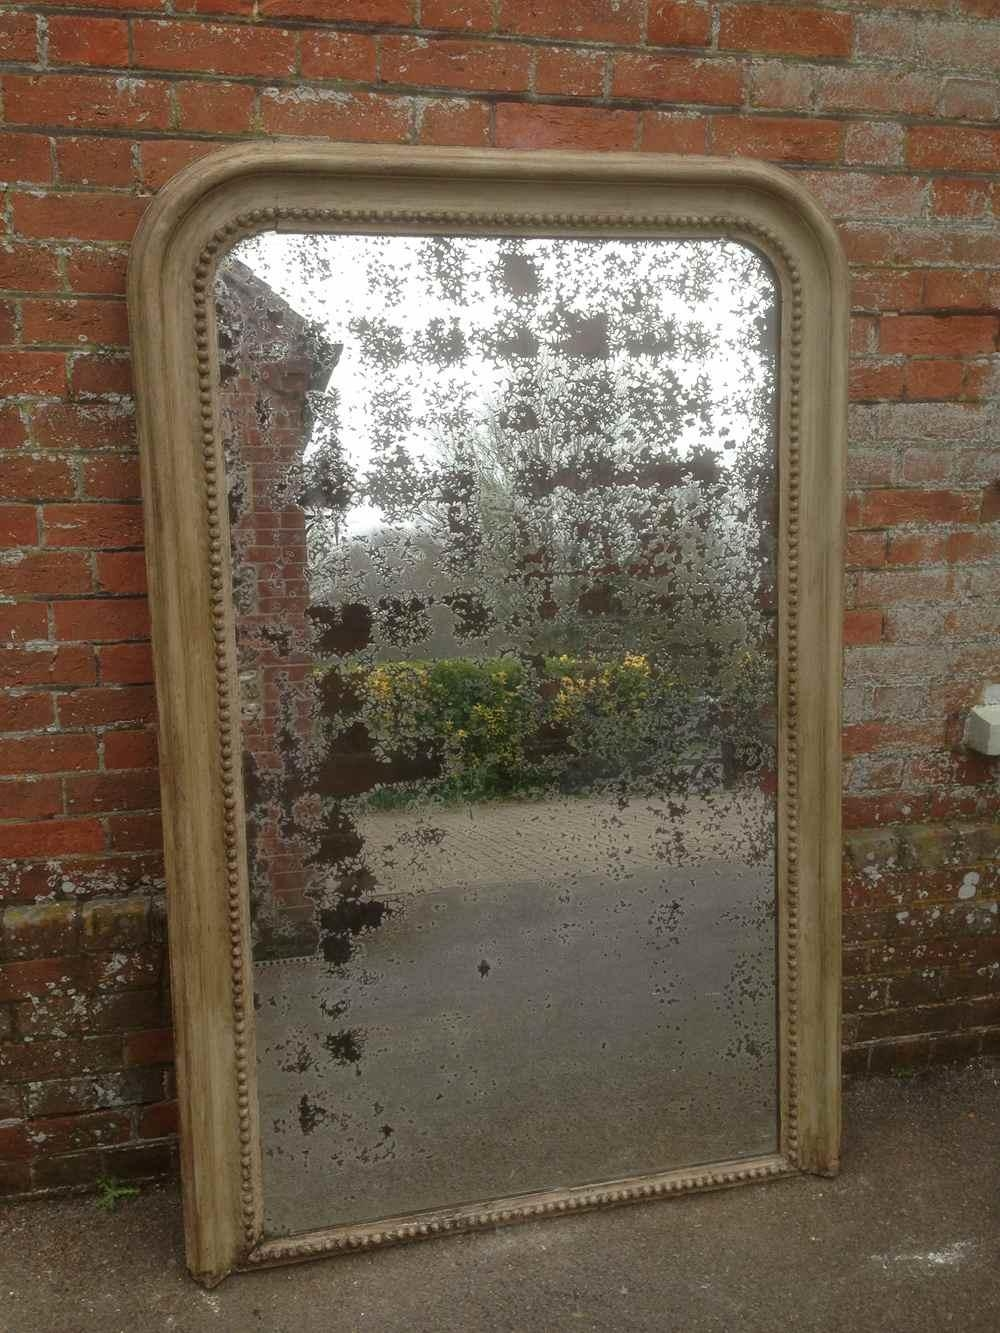 A Very Impressive Large Antique 19Th Century Distressed Mirror With Regard To Antique Mirrors Large (Image 3 of 20)